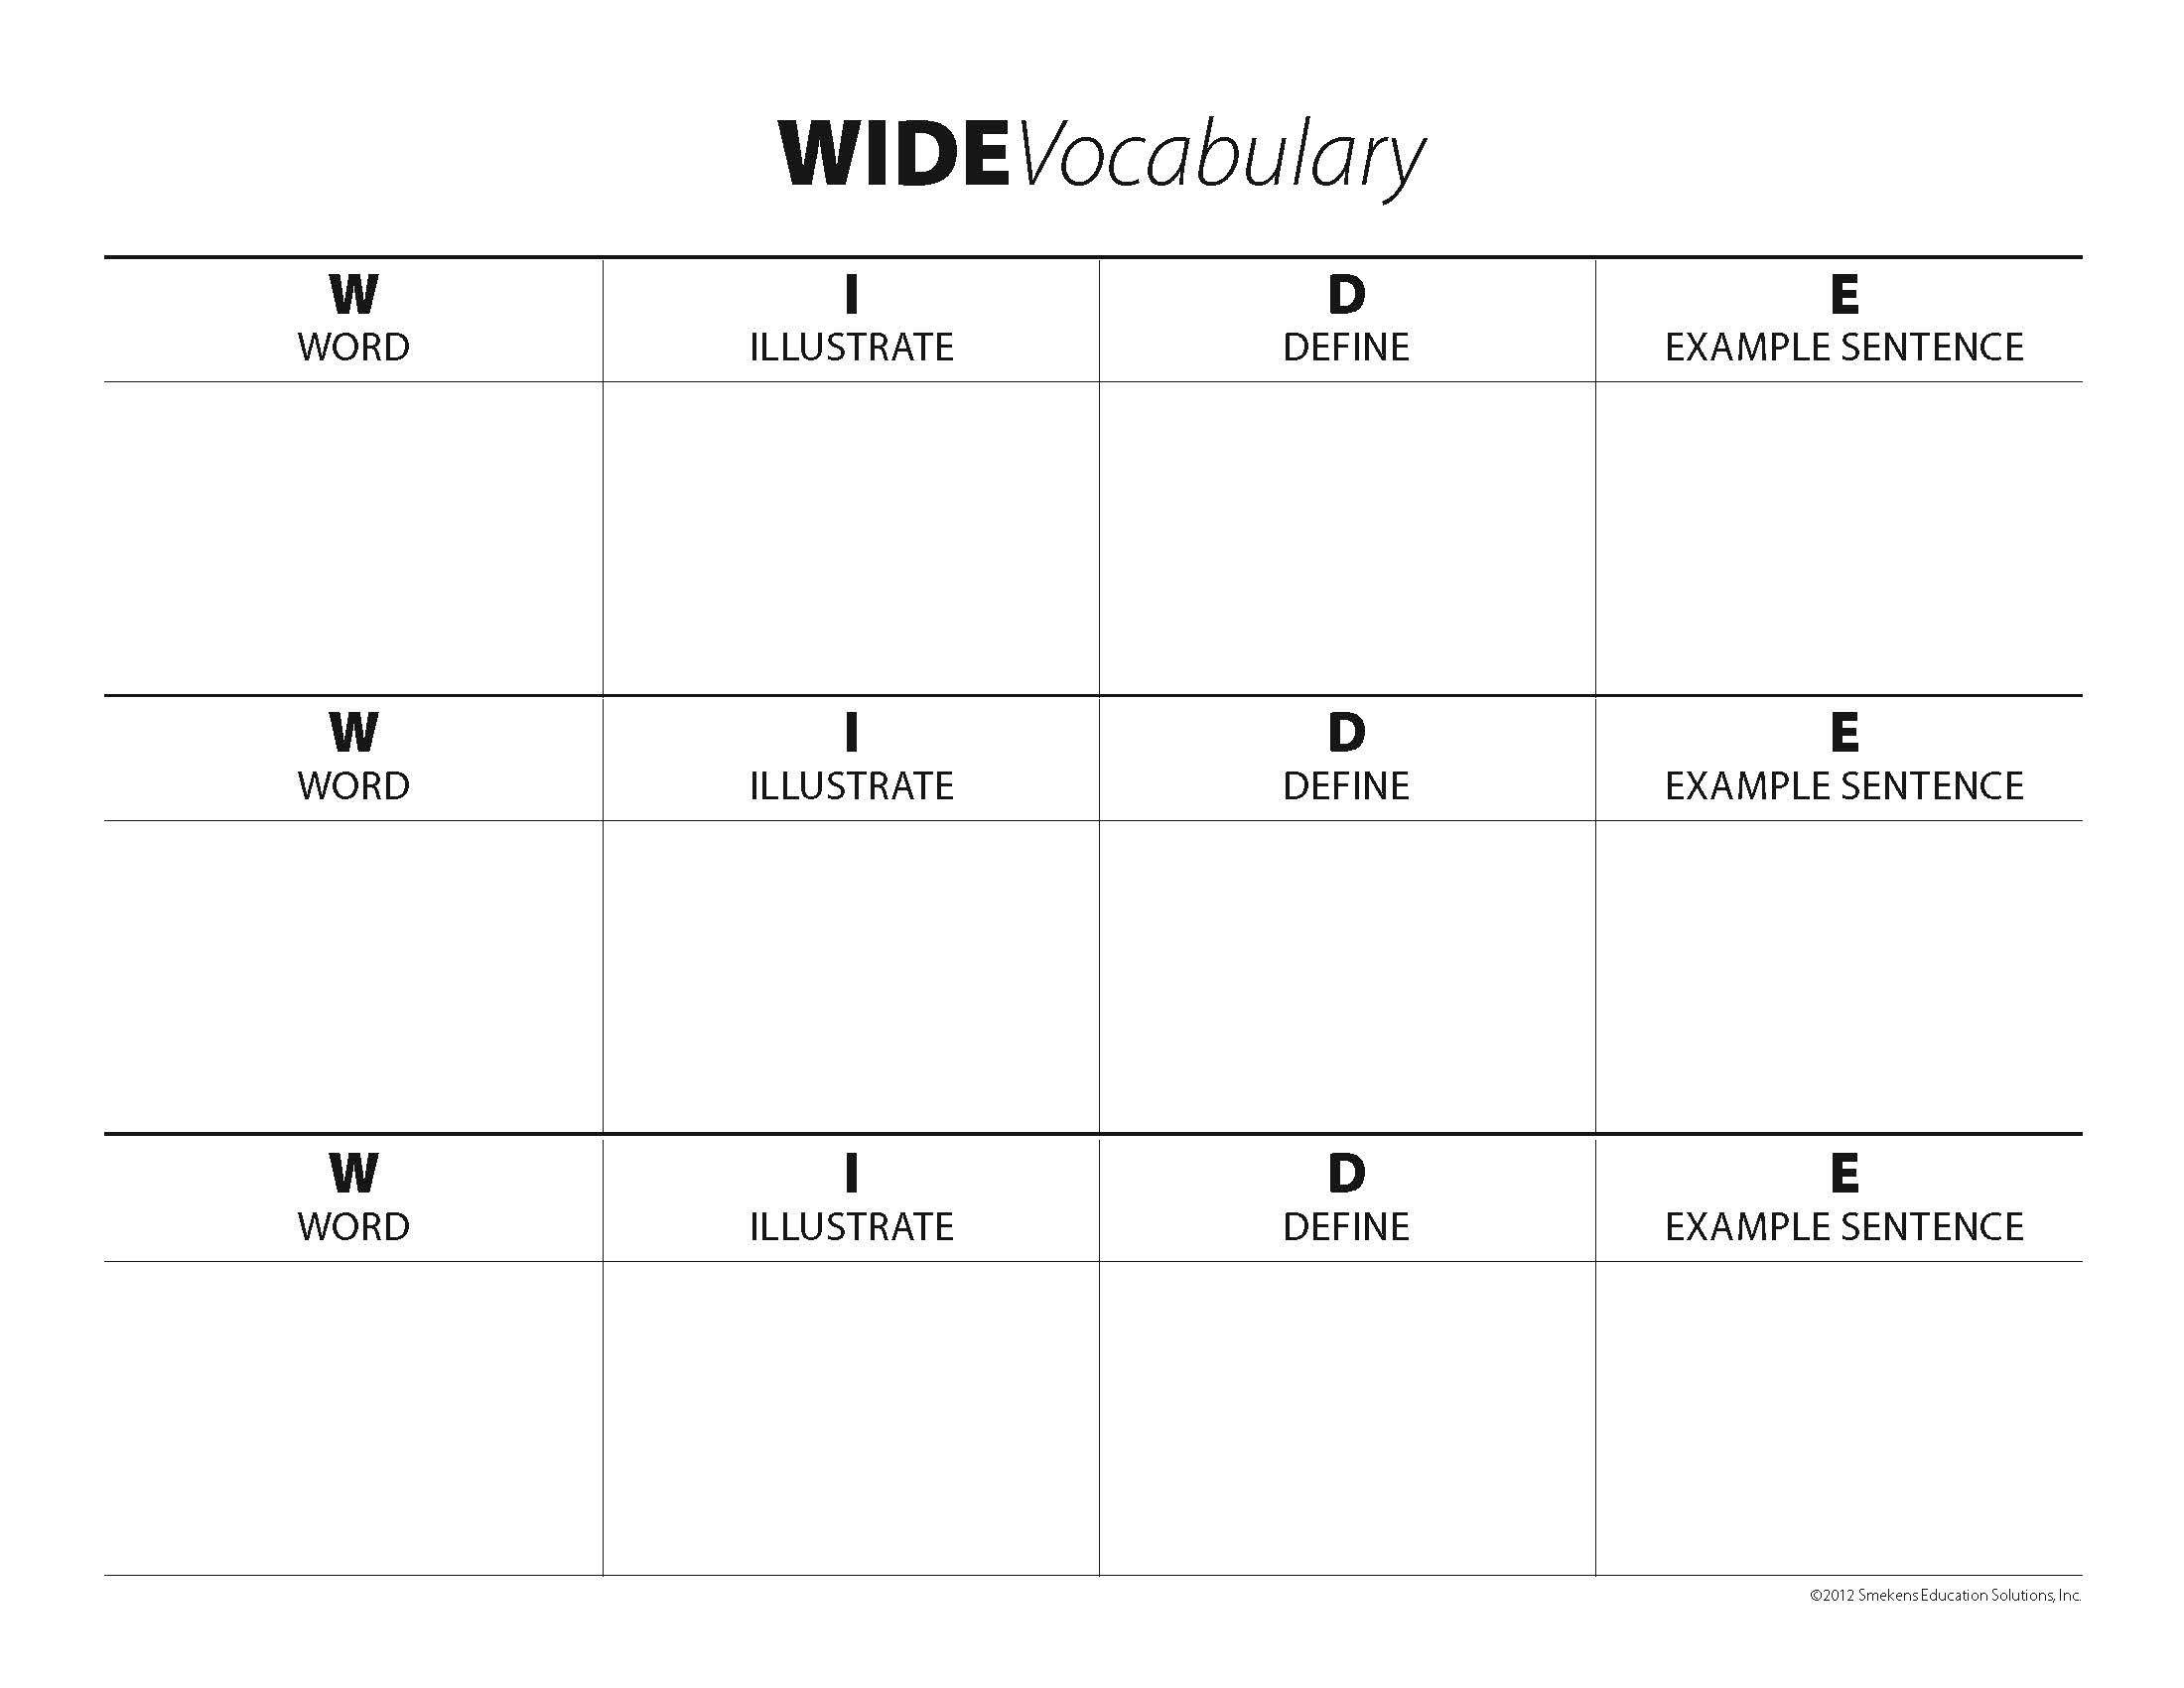 WIDE Vocabulary Examples